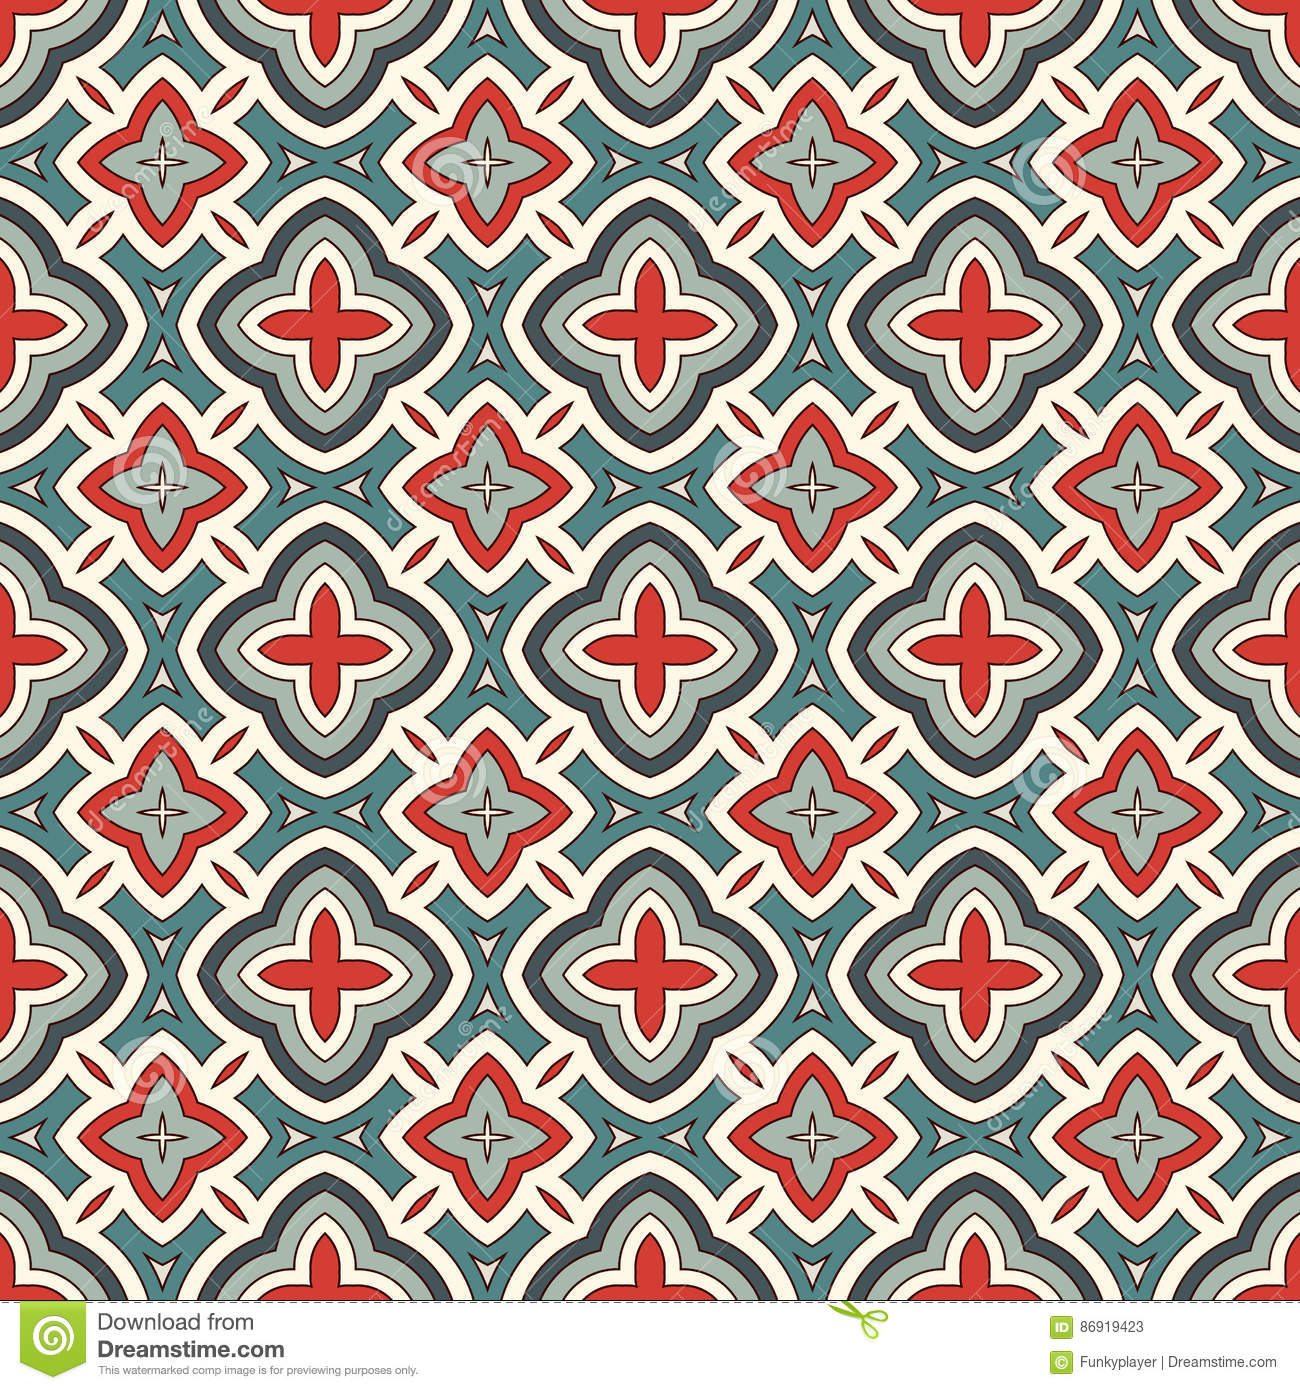 ethnic style seamless pattern with floral motif vintage pastel colors abstract background. Black Bedroom Furniture Sets. Home Design Ideas